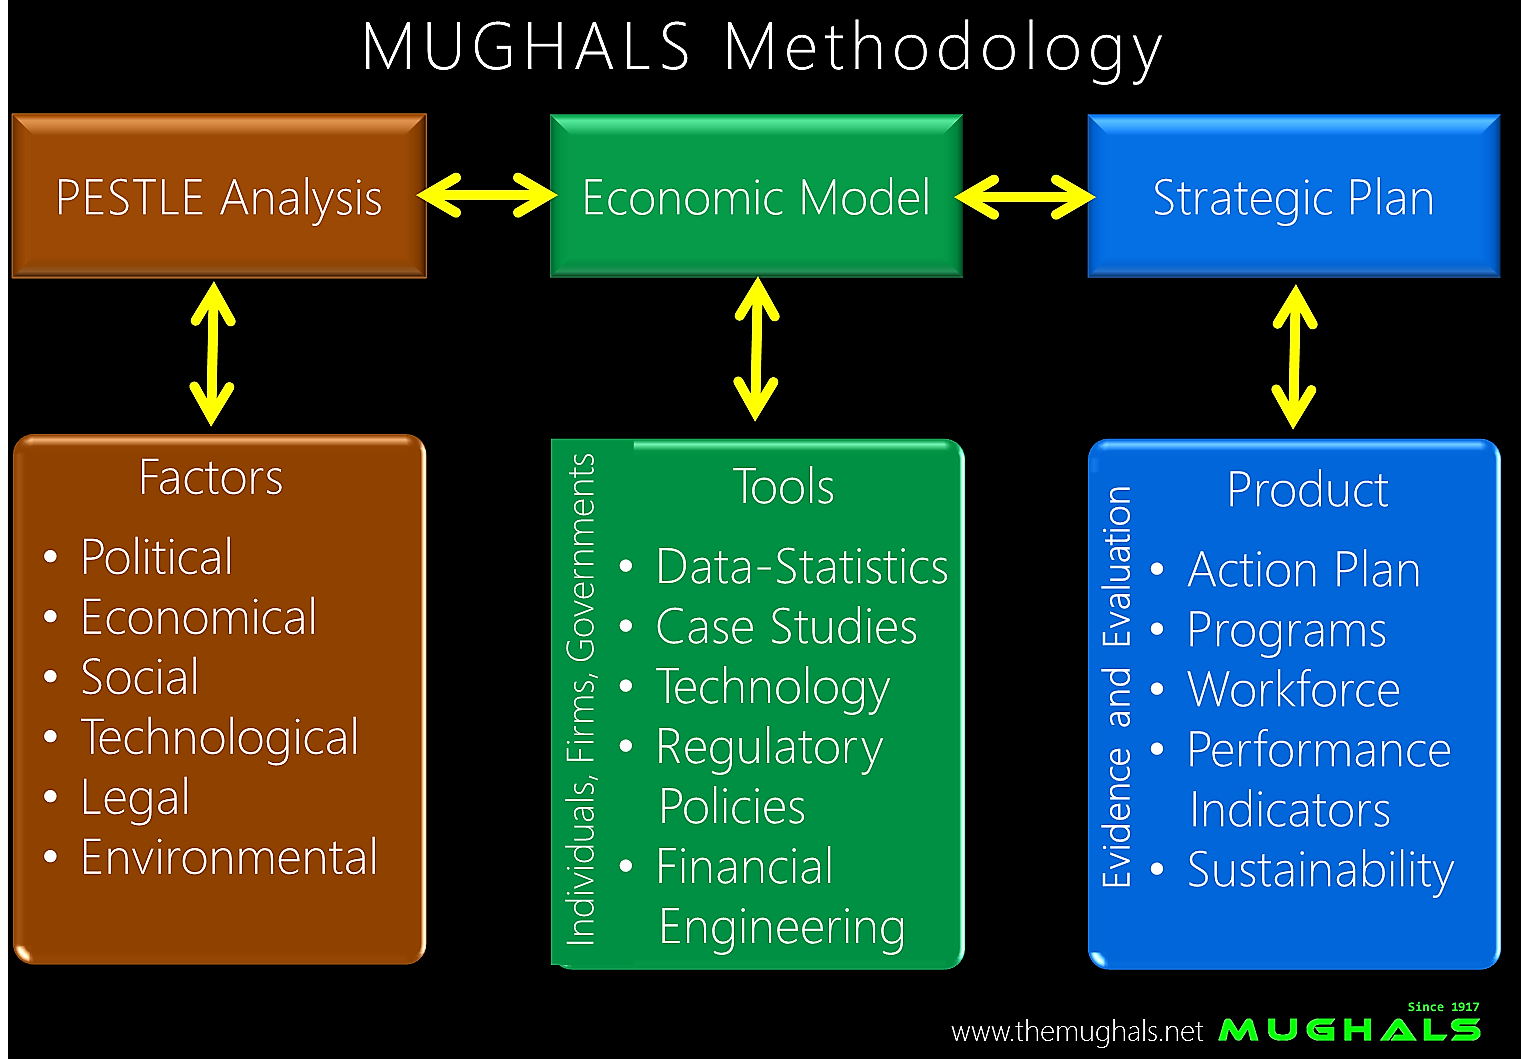 https://sites.google.com/a/themughals.net/www/initiatives/MUGHALS_Web_Methodology.png